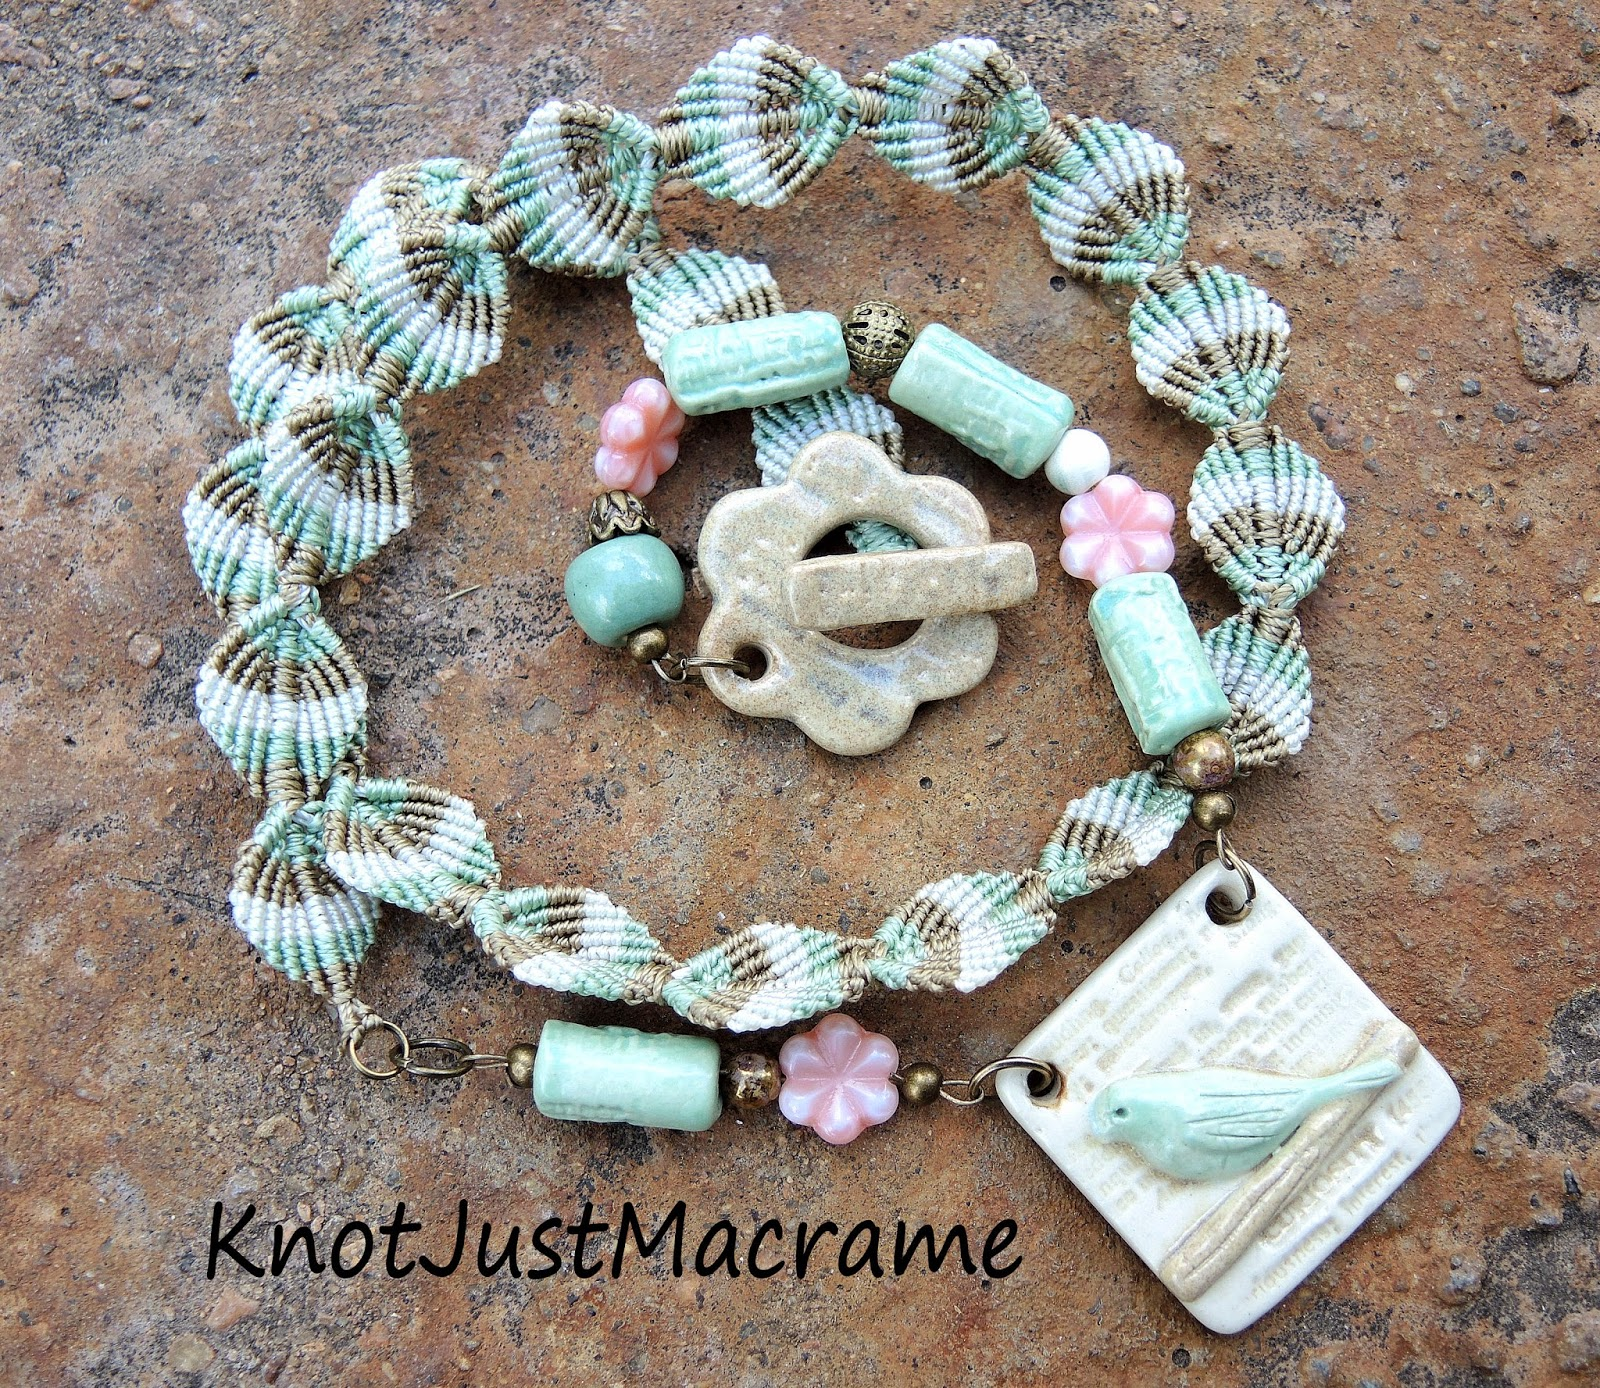 Necklace with macrame leaves and Blu Mudd ceramics.